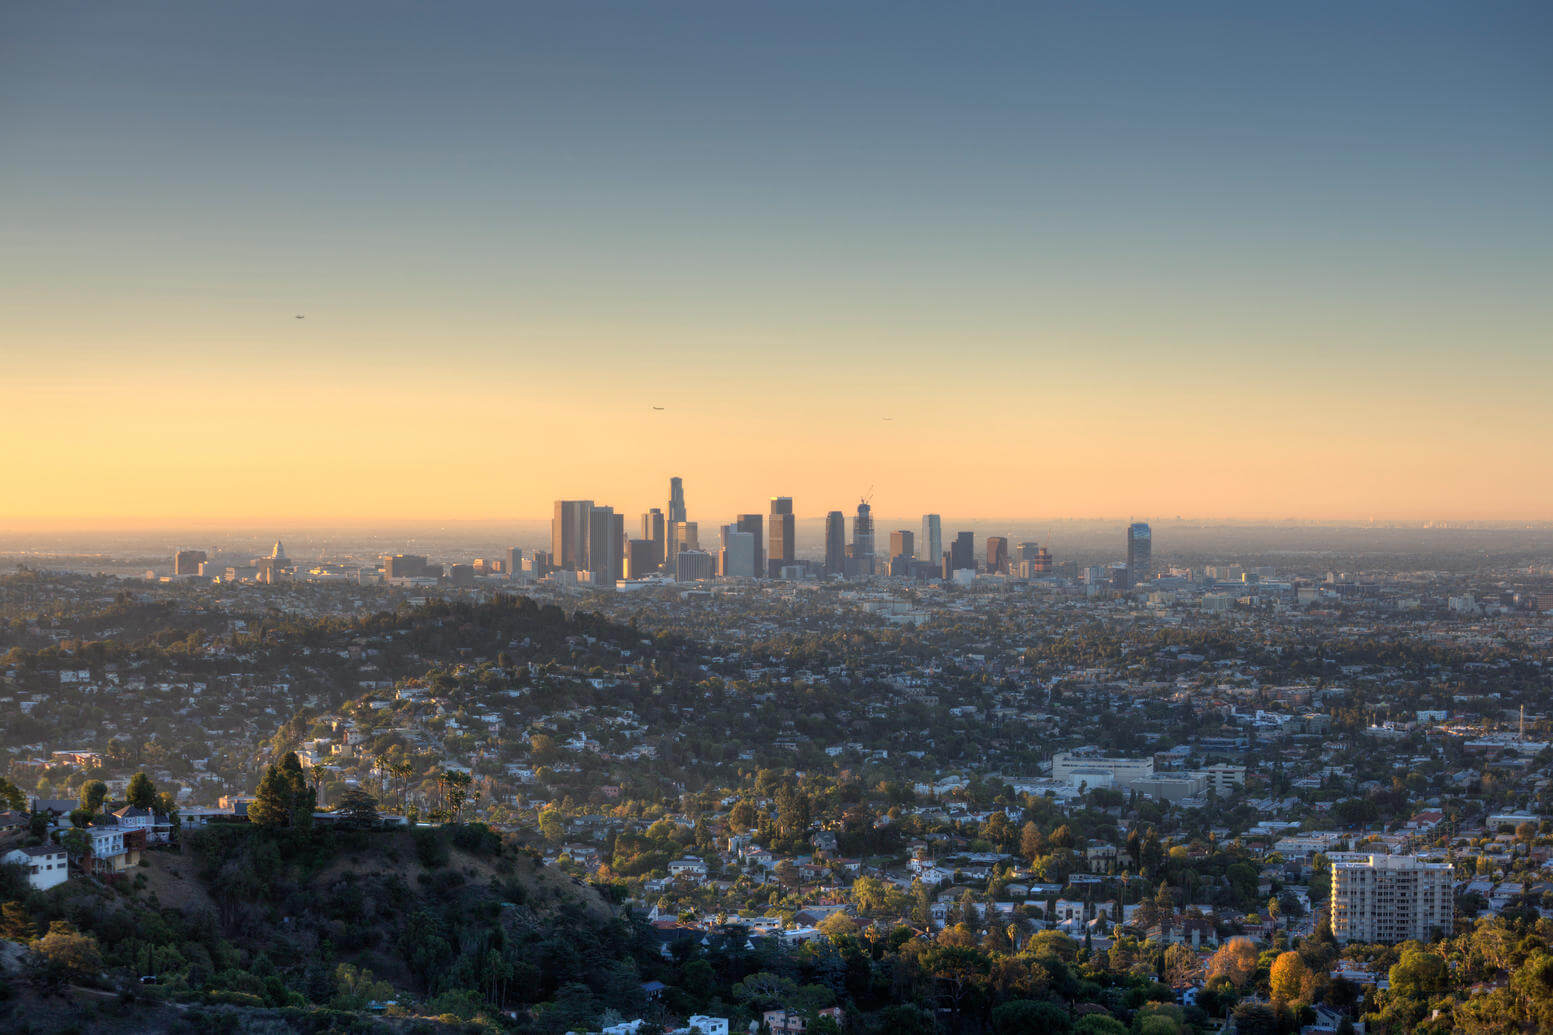 Image of Los Angeles, California.